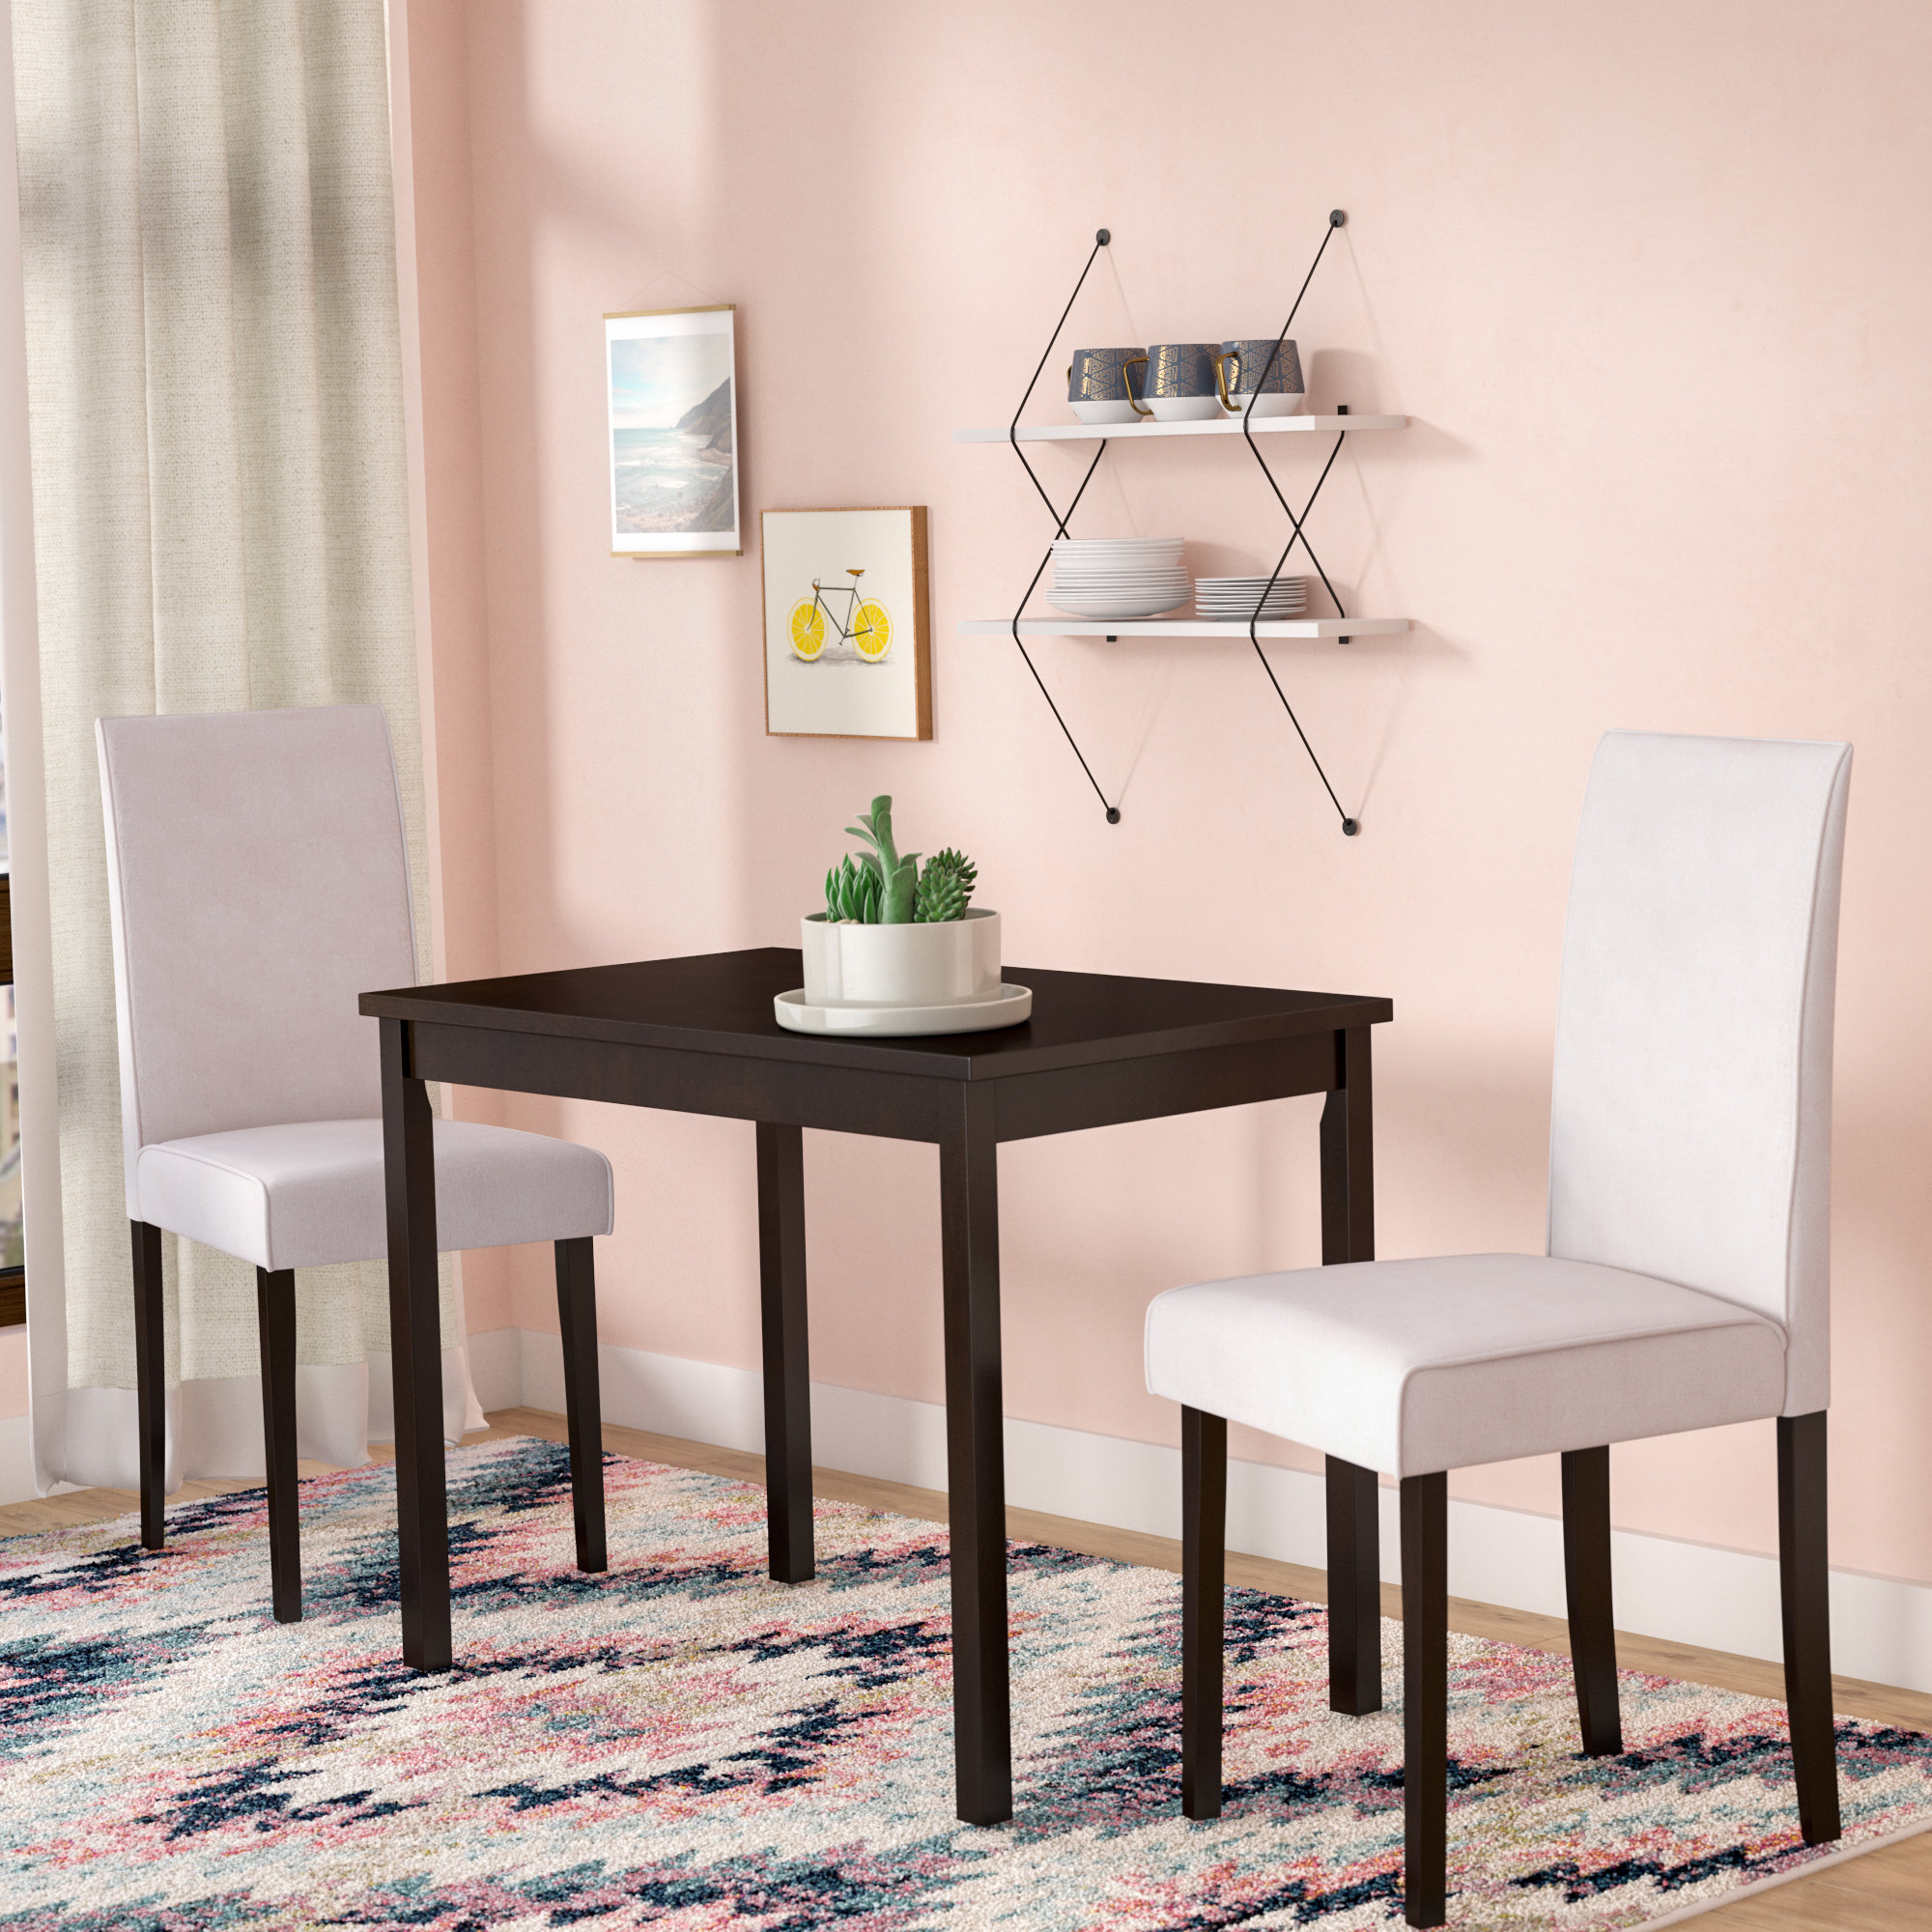 Darvell 3 Piece Dining Set Regarding Most Popular Baillie 3 Piece Dining Sets (View 8 of 20)